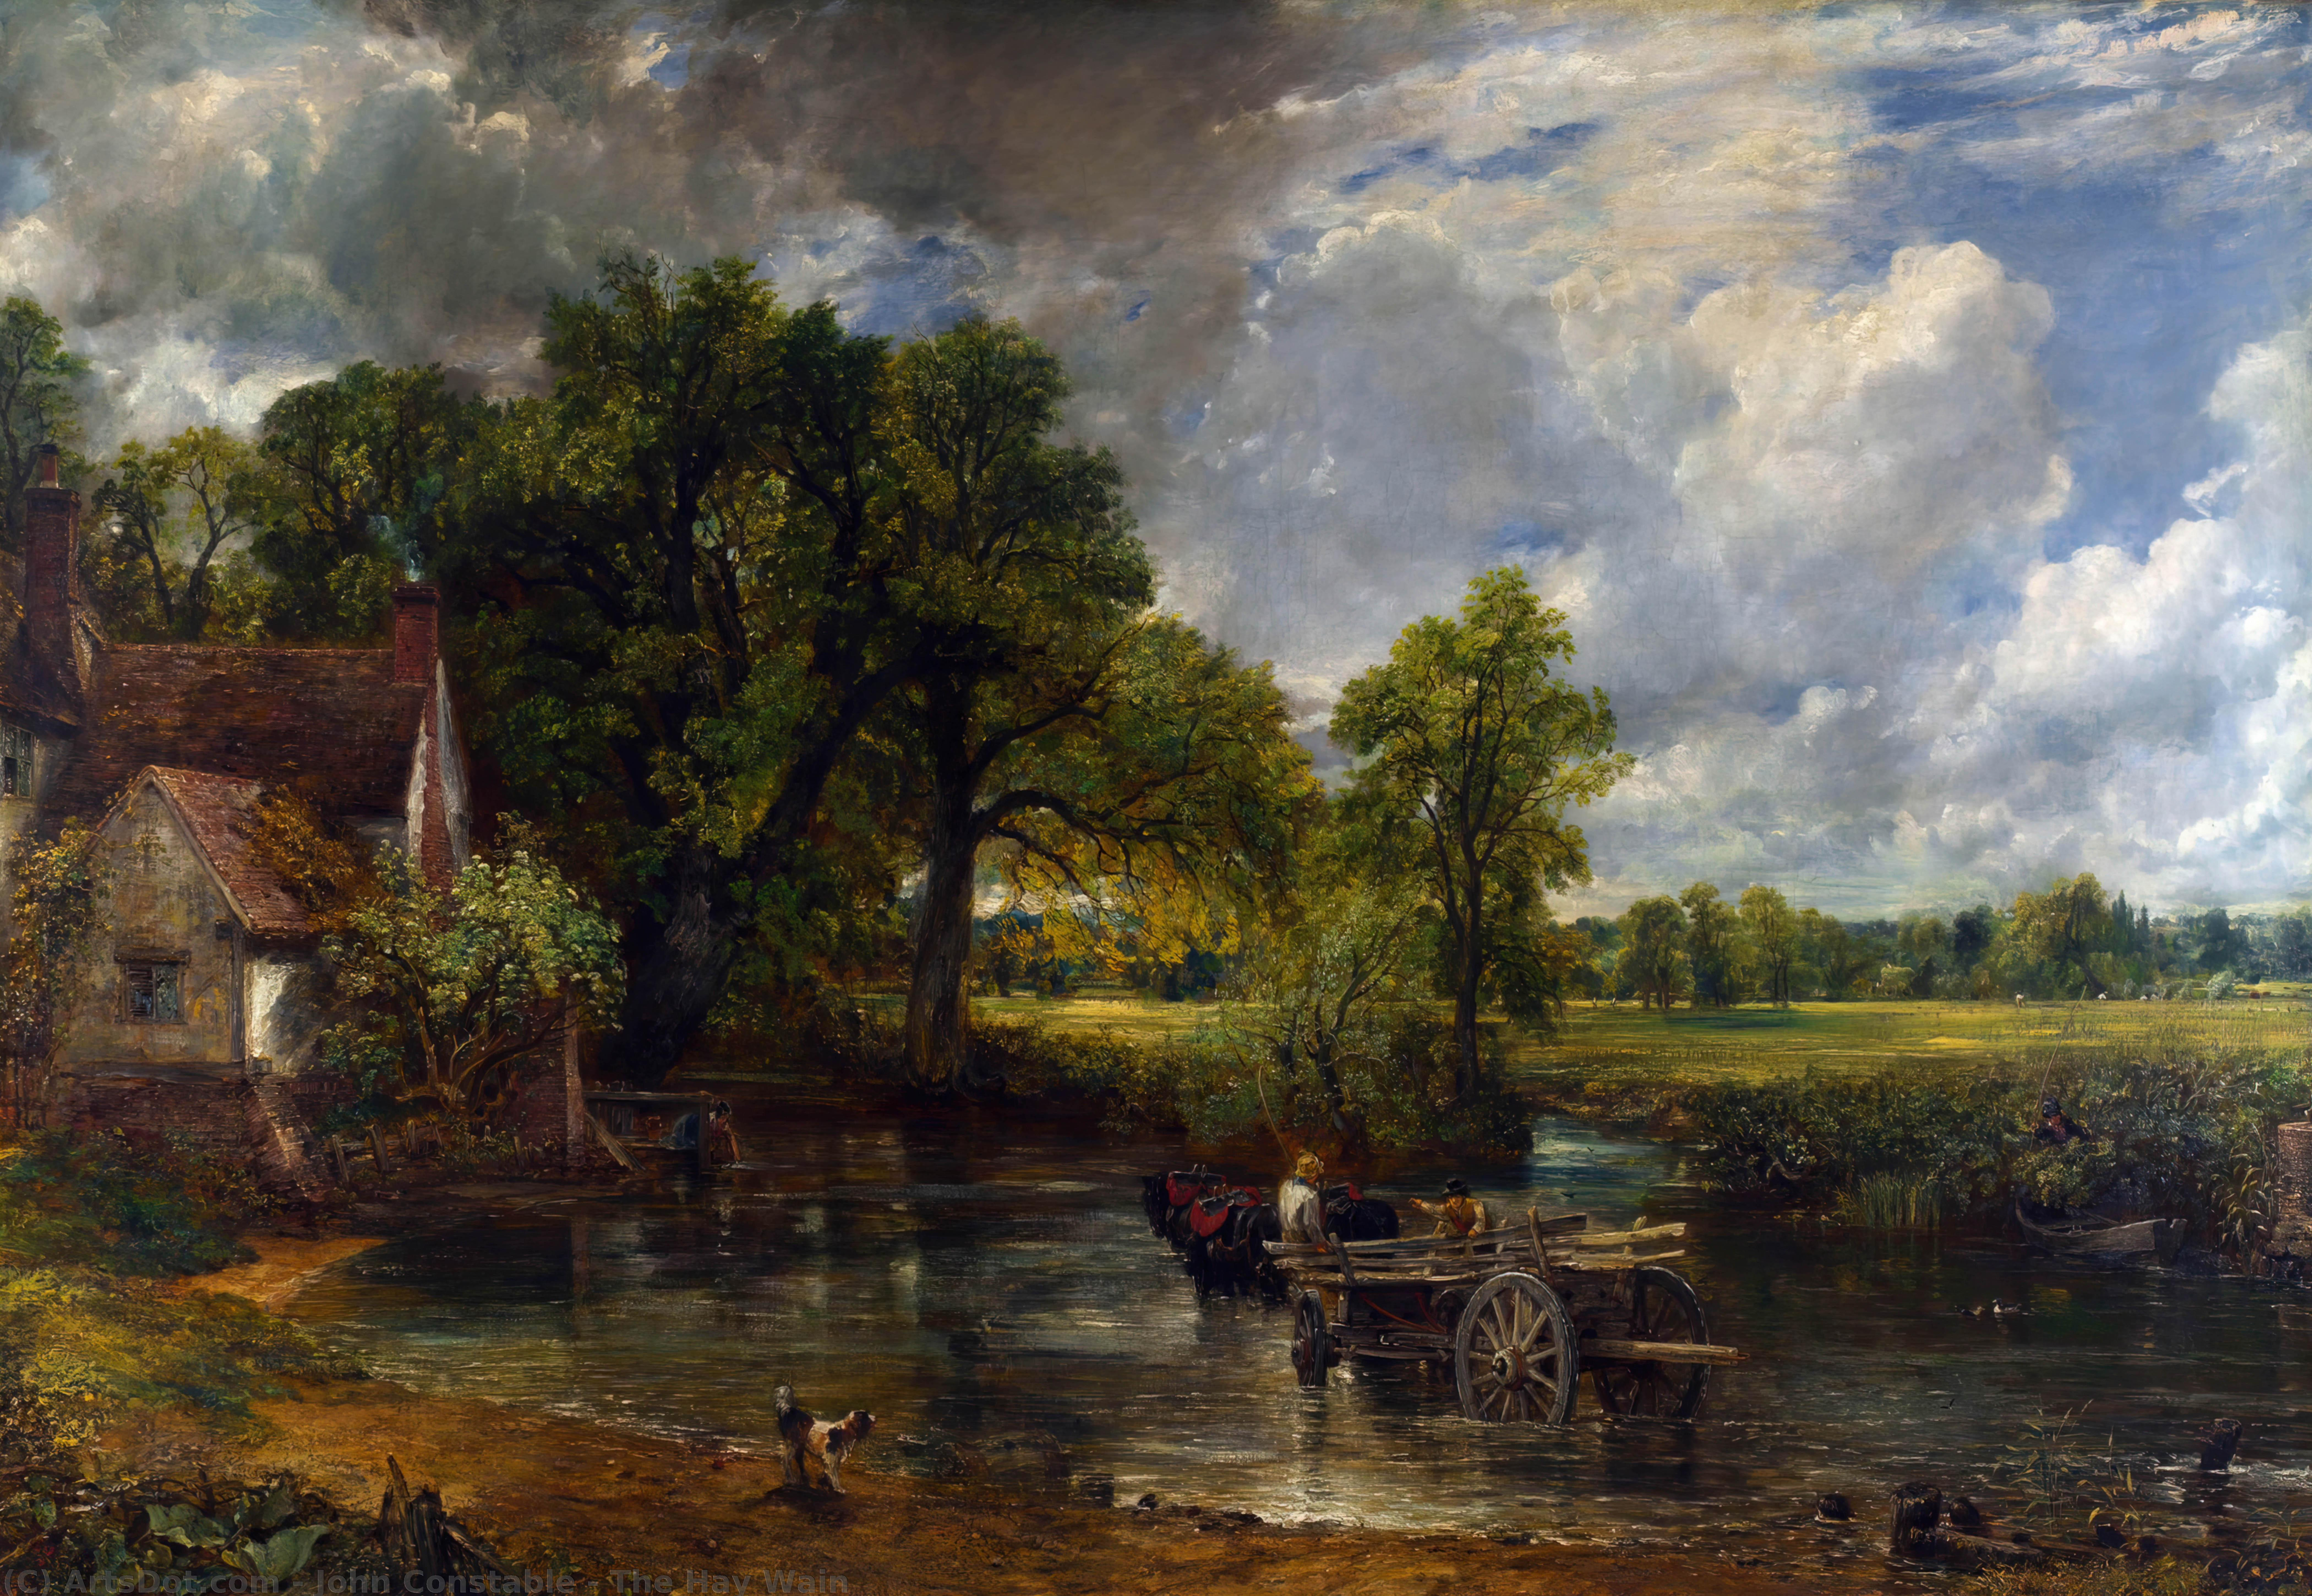 Wikioo.org - The Encyclopedia of Fine Arts - Painting, Artwork by John Constable - The Hay Wain